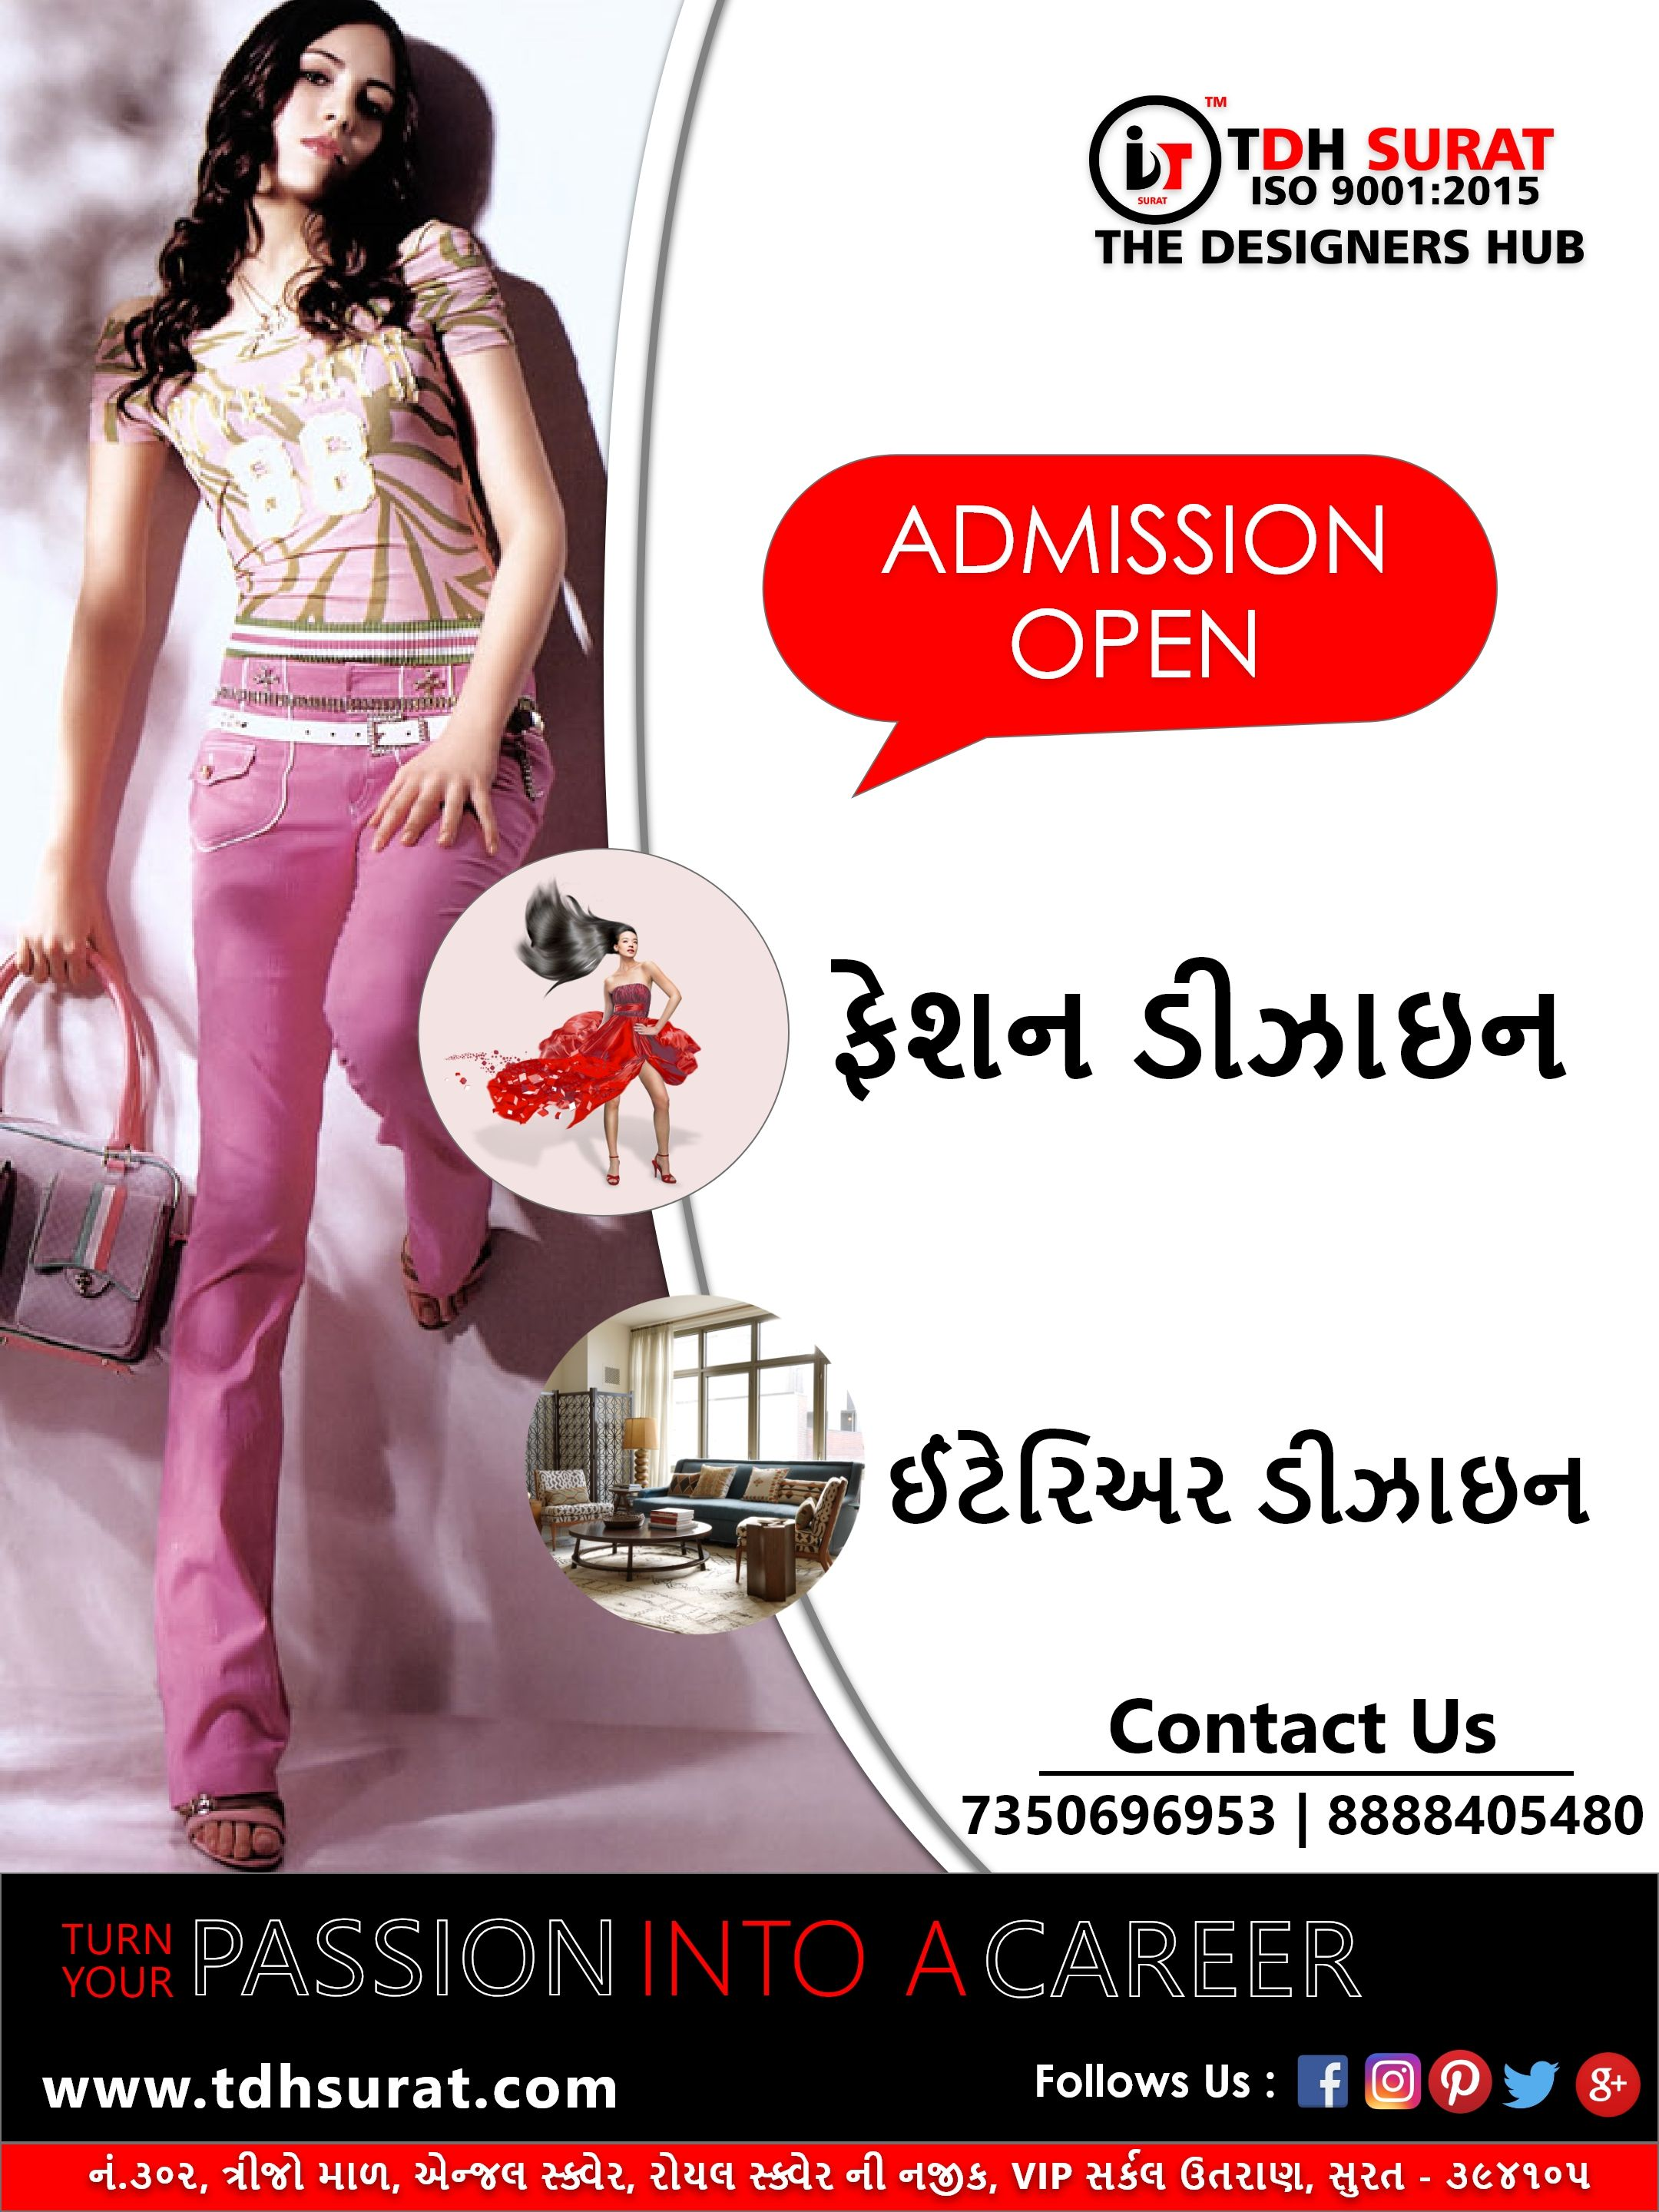 Admissions Open Enroll Now Free Trial Batches And Workshops Fashion Designing Interior Designing Fashion Drawing Fashion Illustration Latest Fashion Design